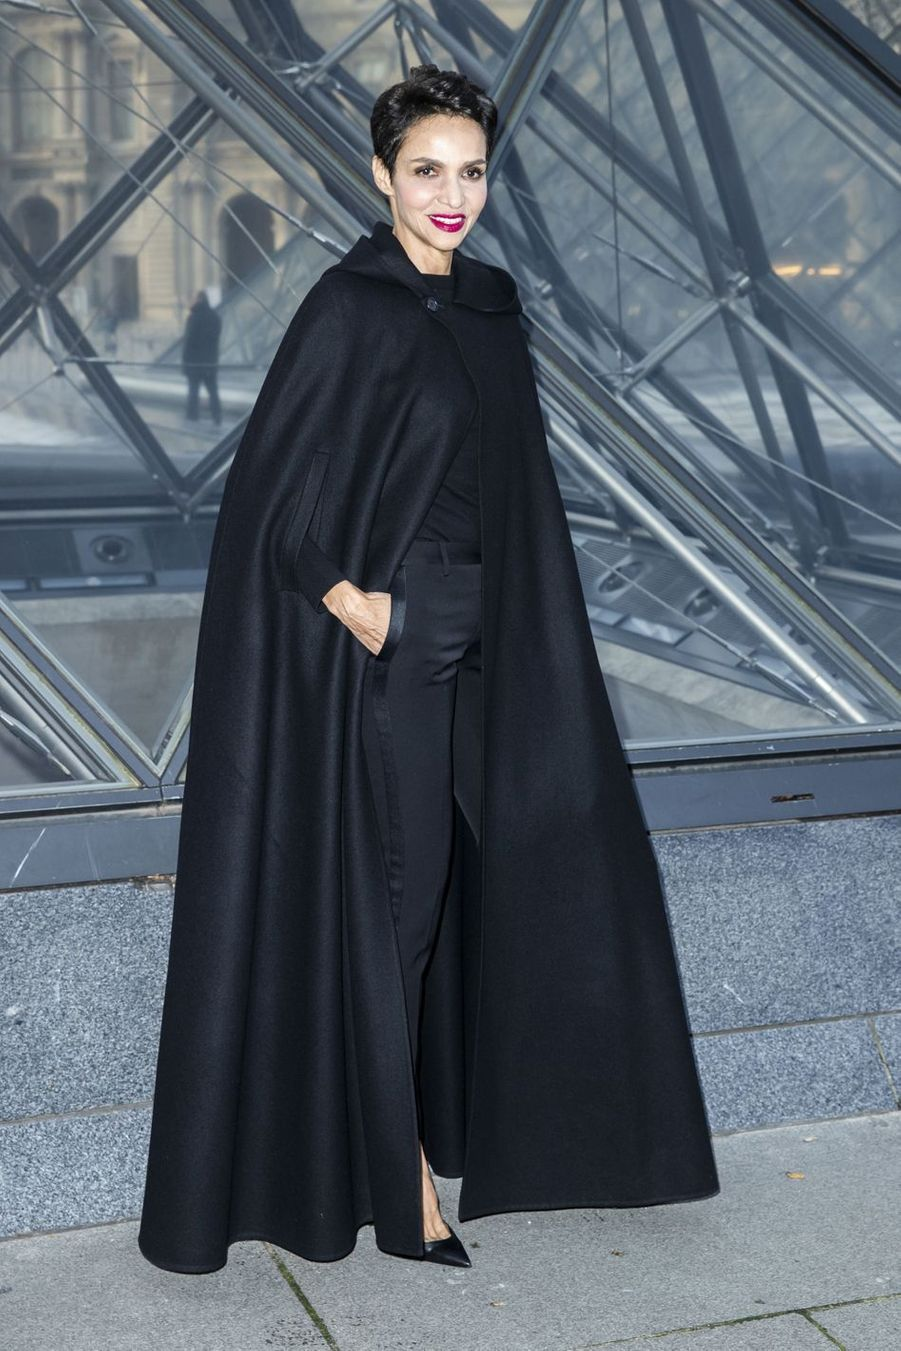 Farida Khelfa au défilé Louis Vuitton à Paris, le 5 mars 2019